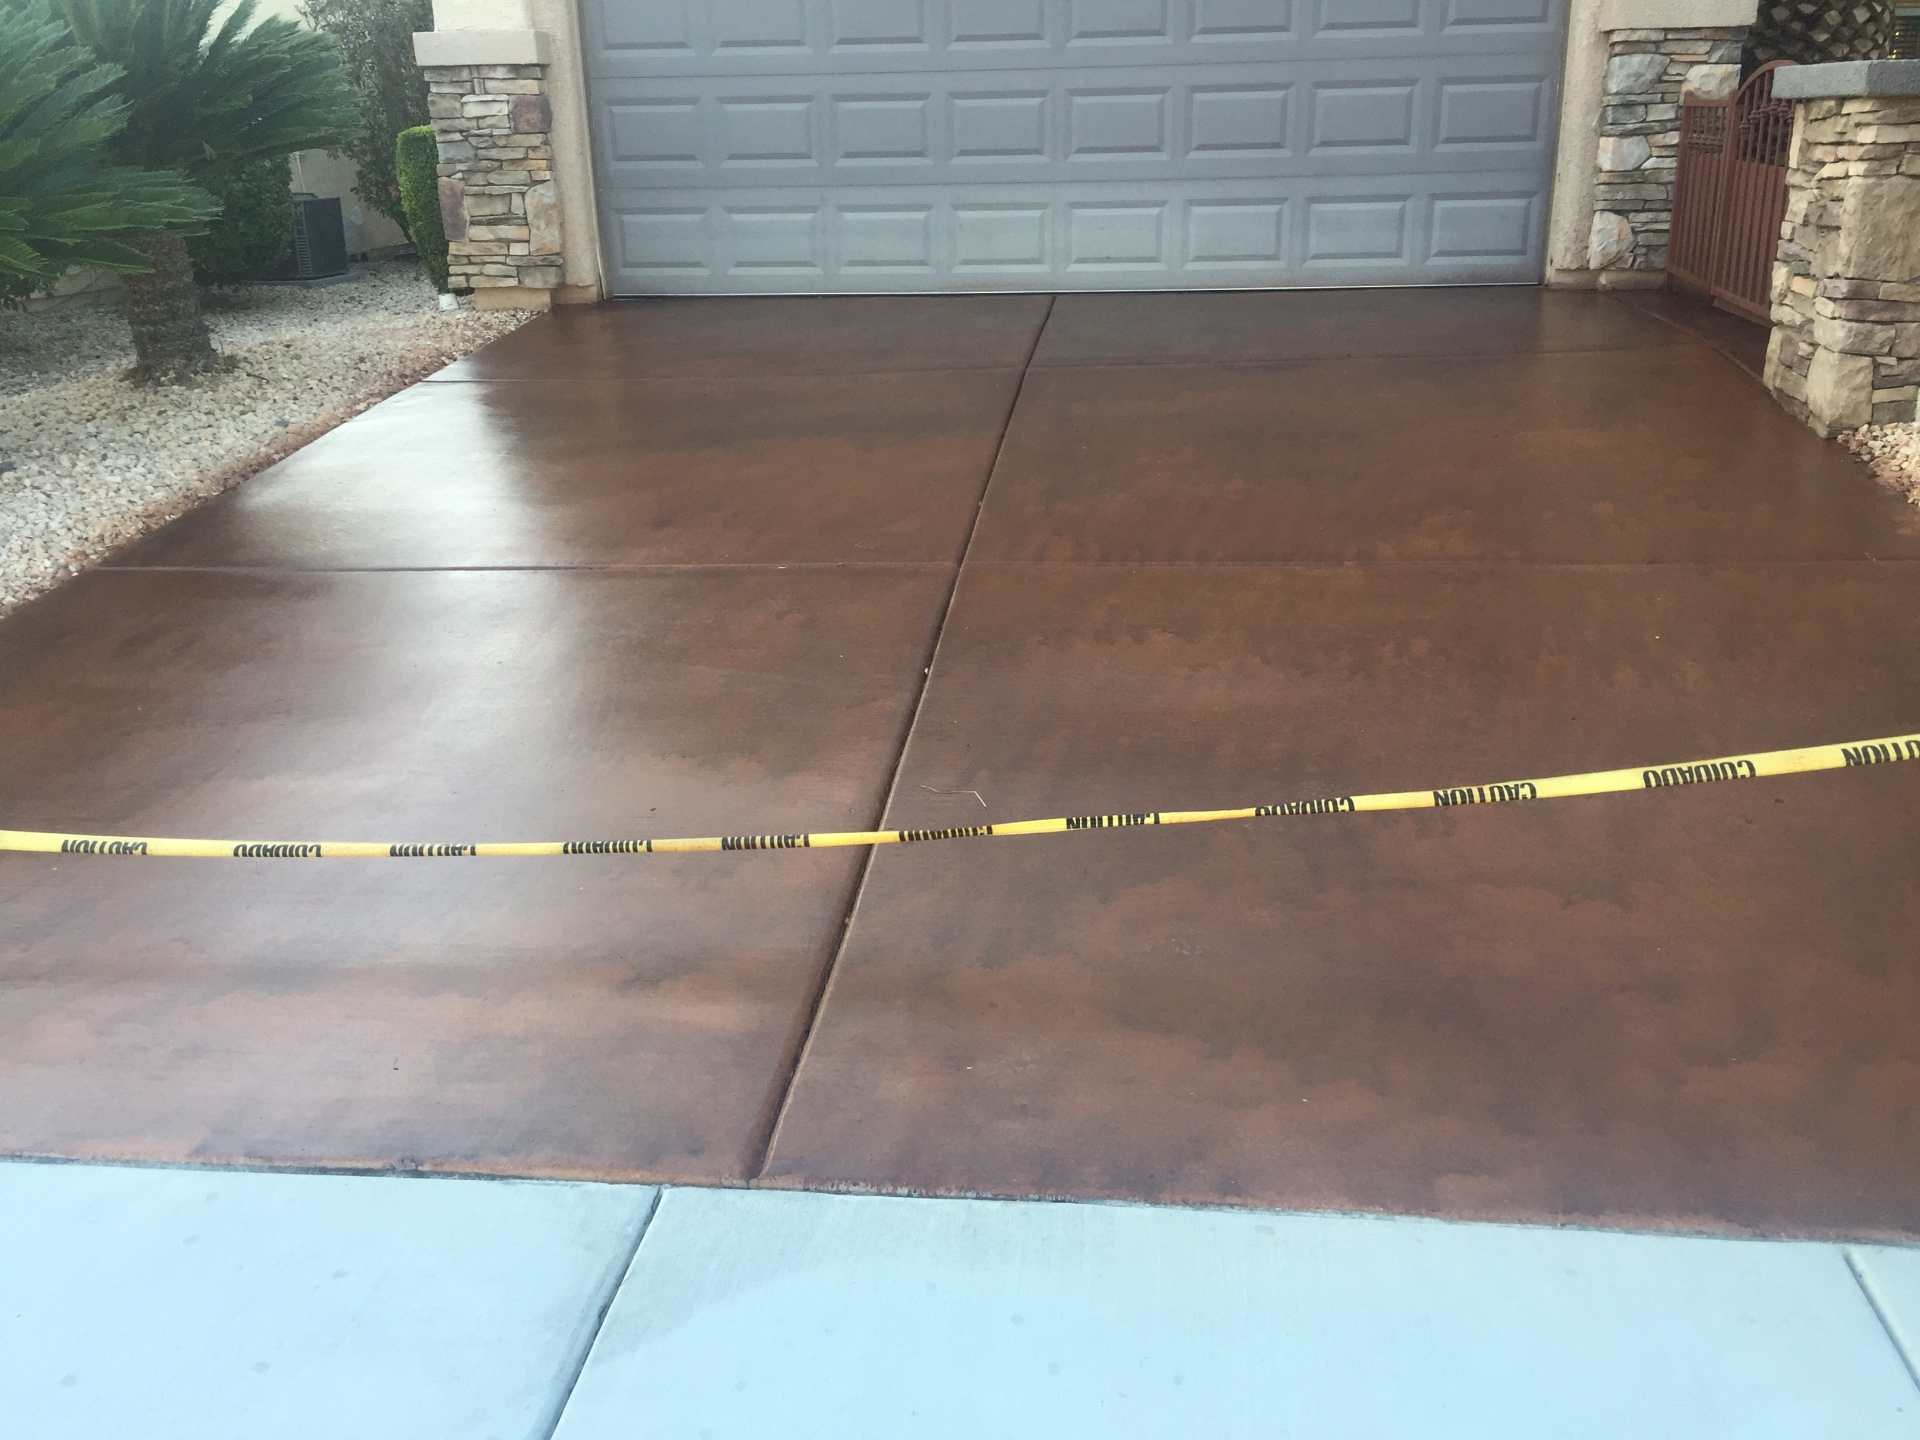 concrete staining; staining concrete; concrete stain; stain concrete; driveway staining; staining driveway; driveway stain; stain driveway; patio staining; staining patio; patio stain; stain patio; garage floor staining; staining garage floor; garage floor stain; stain garage floor; concrete sealing; sealing concrete; concrete seal; seal concrete; best concrete sealer; best concrete staining; driveway sealing; sealing driveway; driveway sealer; concrete sealer; best driveway sealing; garage floor epoxy; epoxy; epoxy coating; epoxy garage floor; concrete polishing; polishing concrete; concrete polish; garage floor polishing; warehouse polishing; commercial concrete polishing; commercial concrete staining; commercial concrete staining; storefront concrete staining; storefront concrete cleaning; storefront concrete sealing; concrete cleaning; cleaning concrete; driveway cleaning; concrete cleaner; clean concrete; pressure washing; power washing; commercial power washing; commercial pressure washing